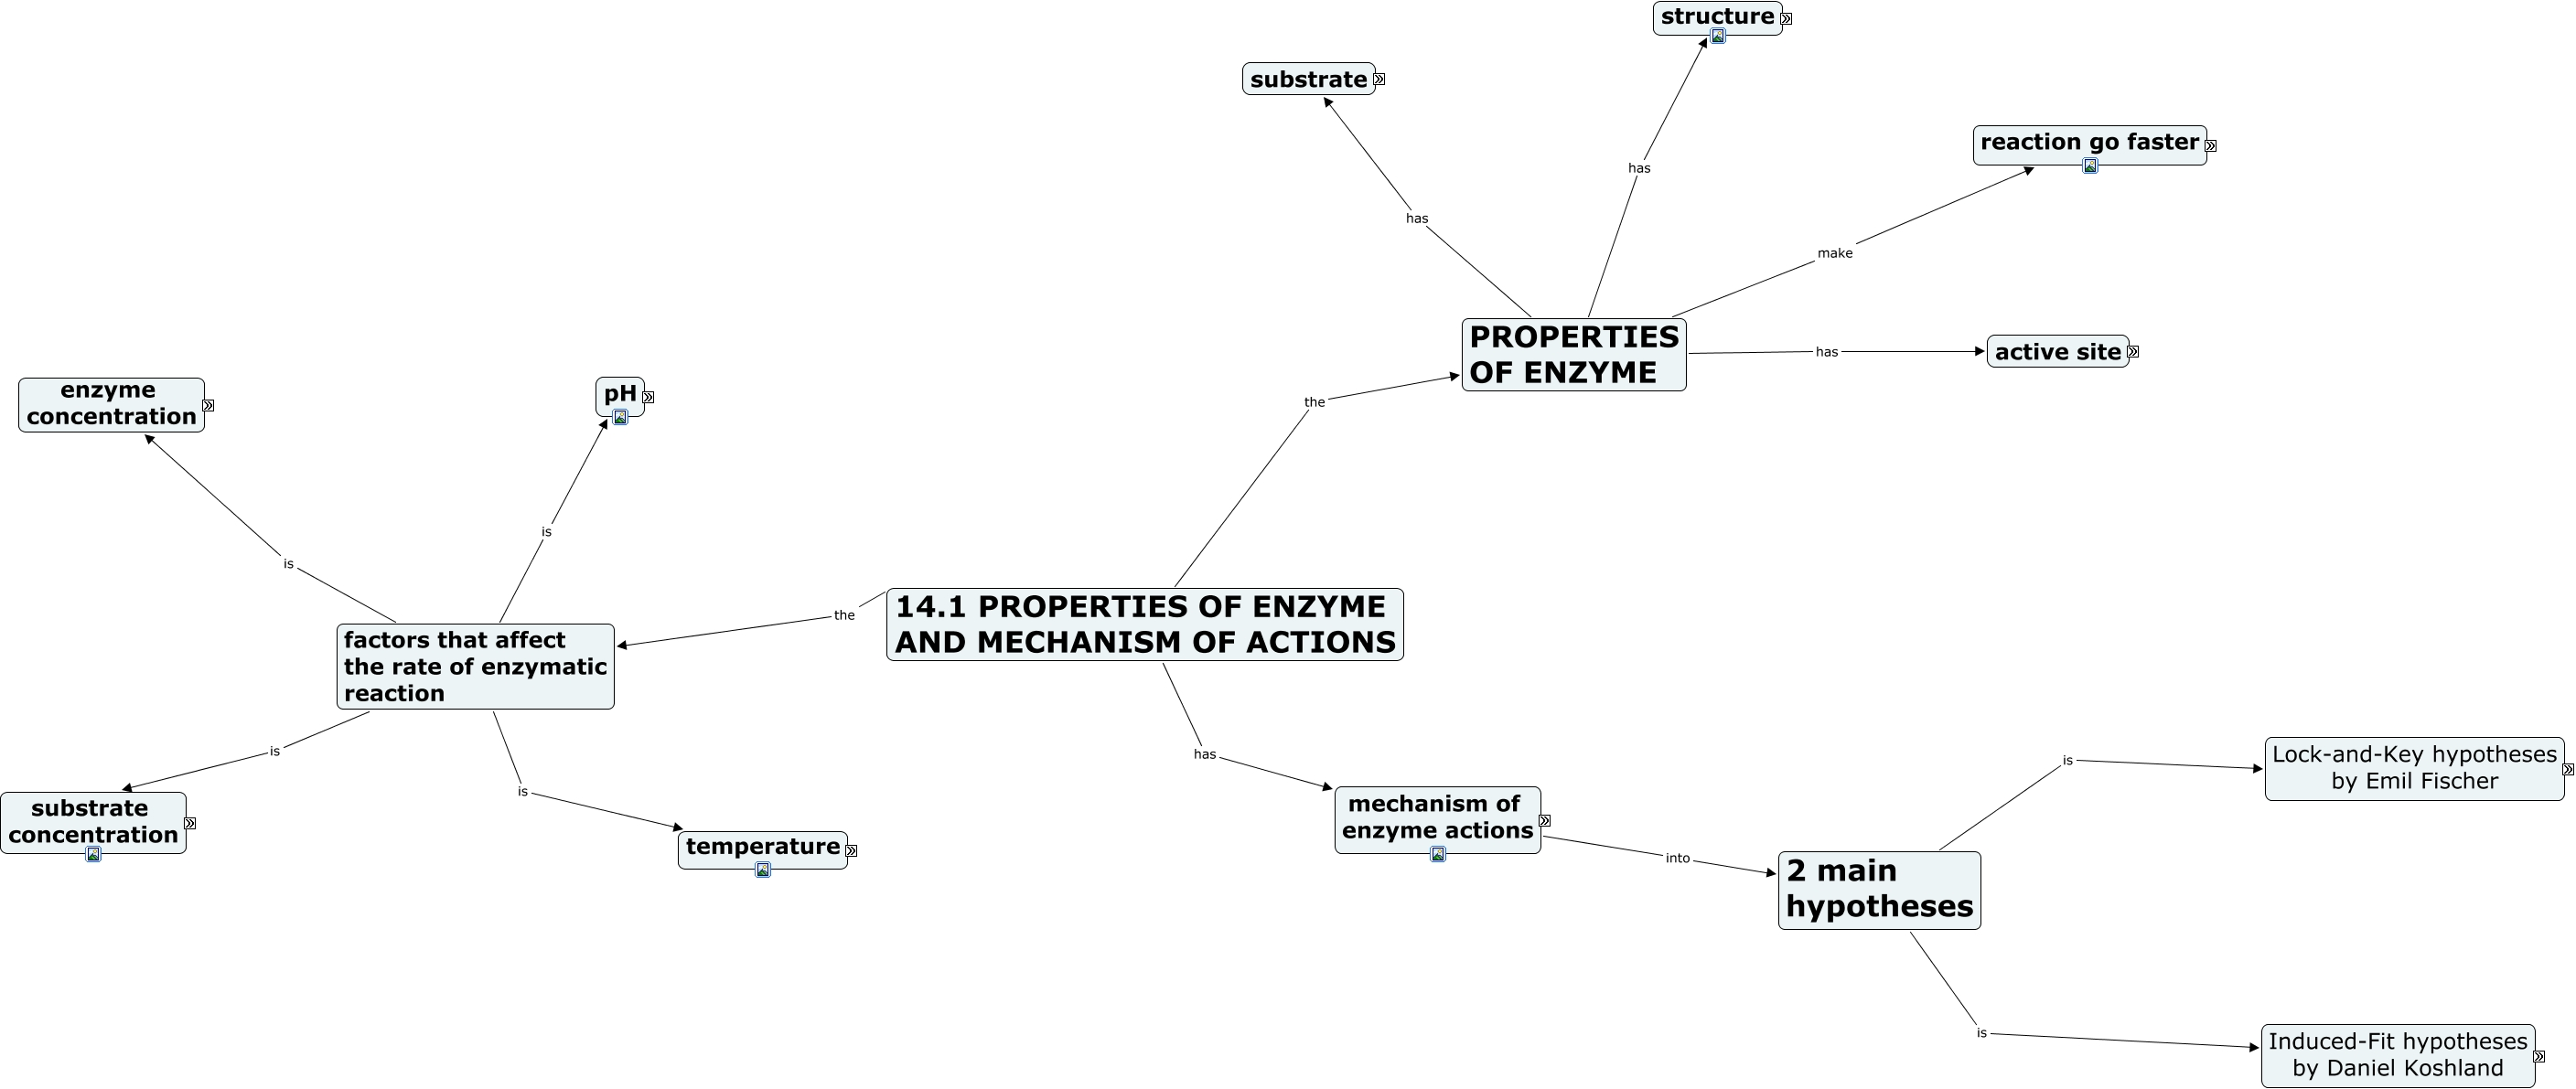 141 propertieds of enzyme and mechanism of actionlina is lock and key hypotheses by emil fischer 141 properties of enzyme and mechanism of actions the factors that affect the rate of enzymatic reaction ccuart Image collections